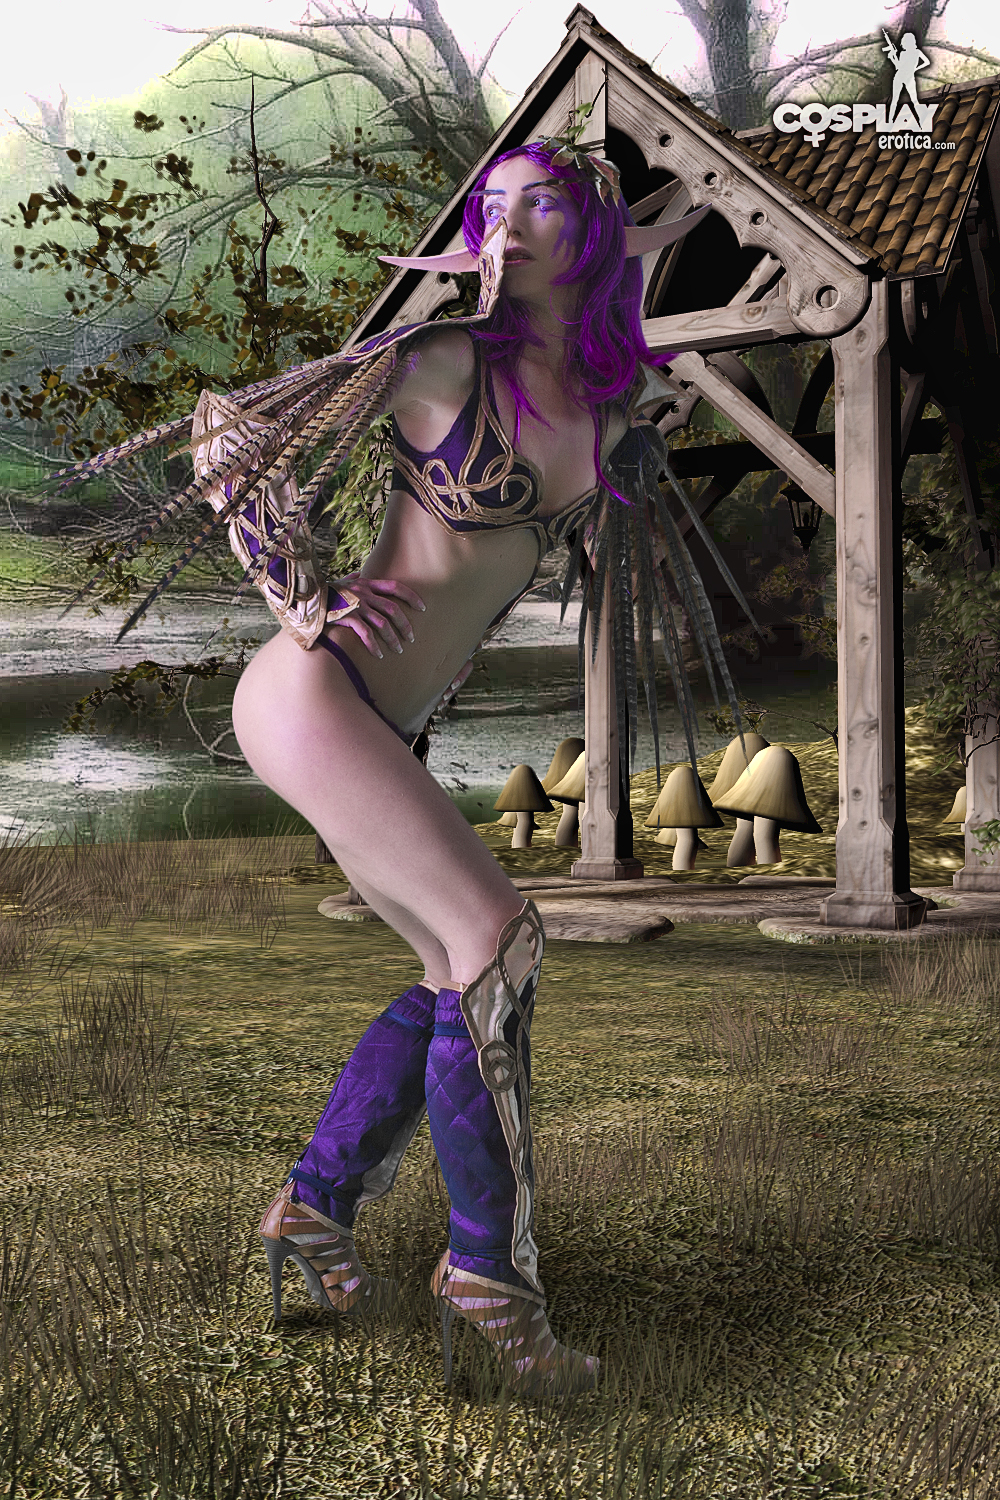 Cosplay erotica warcraft naked scenes